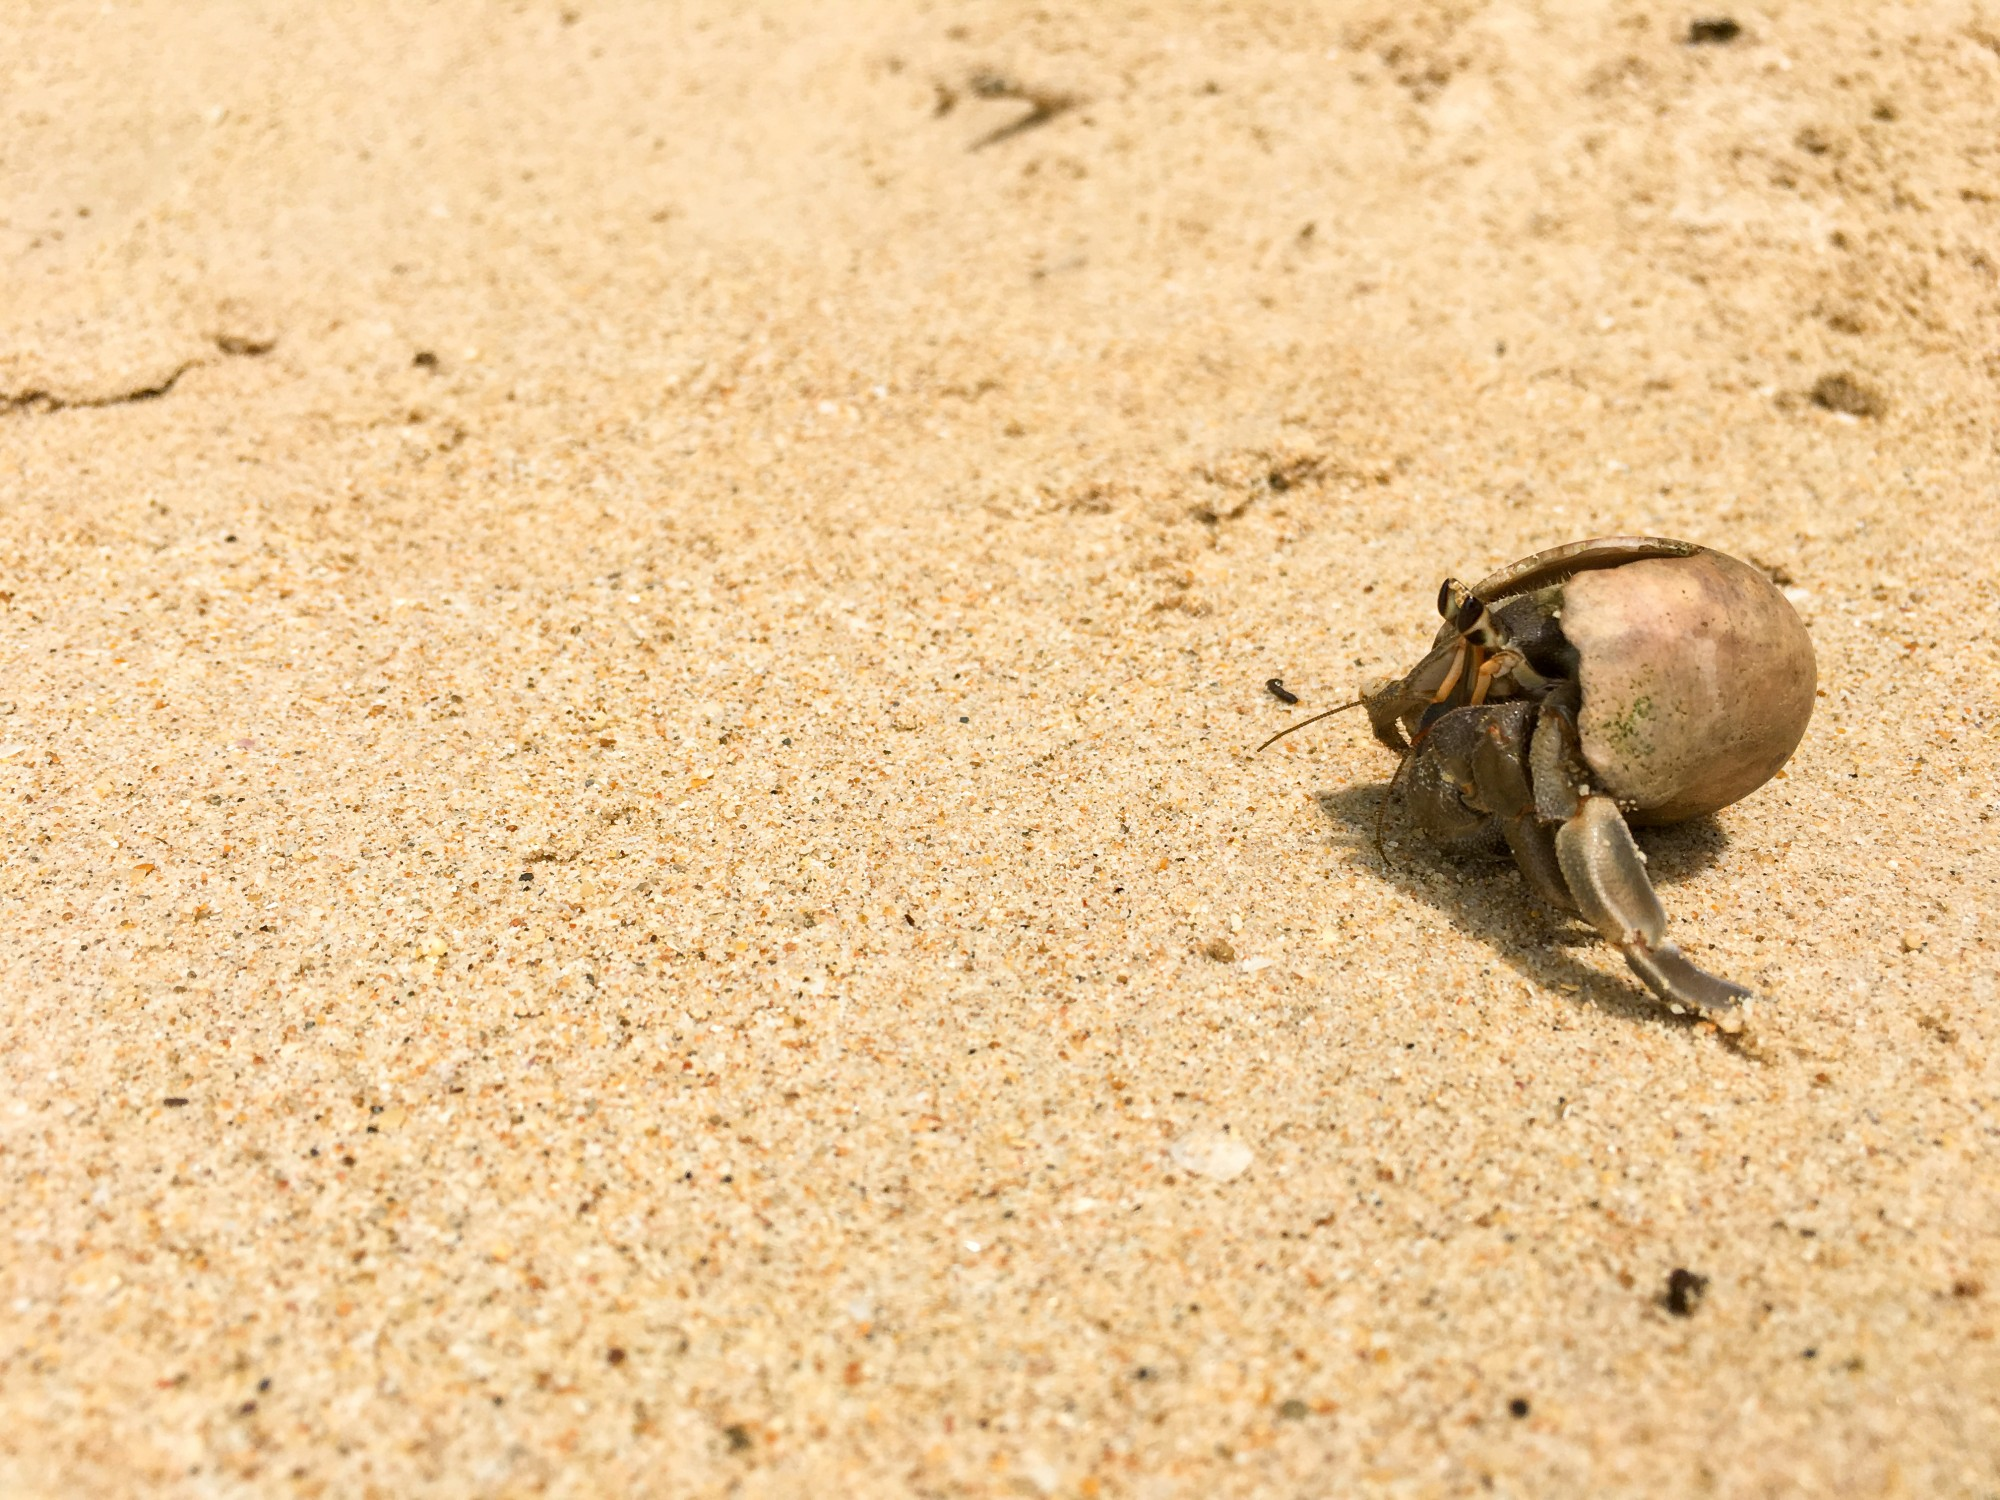 Hermit crab at White Sand Beach, Khao Lak